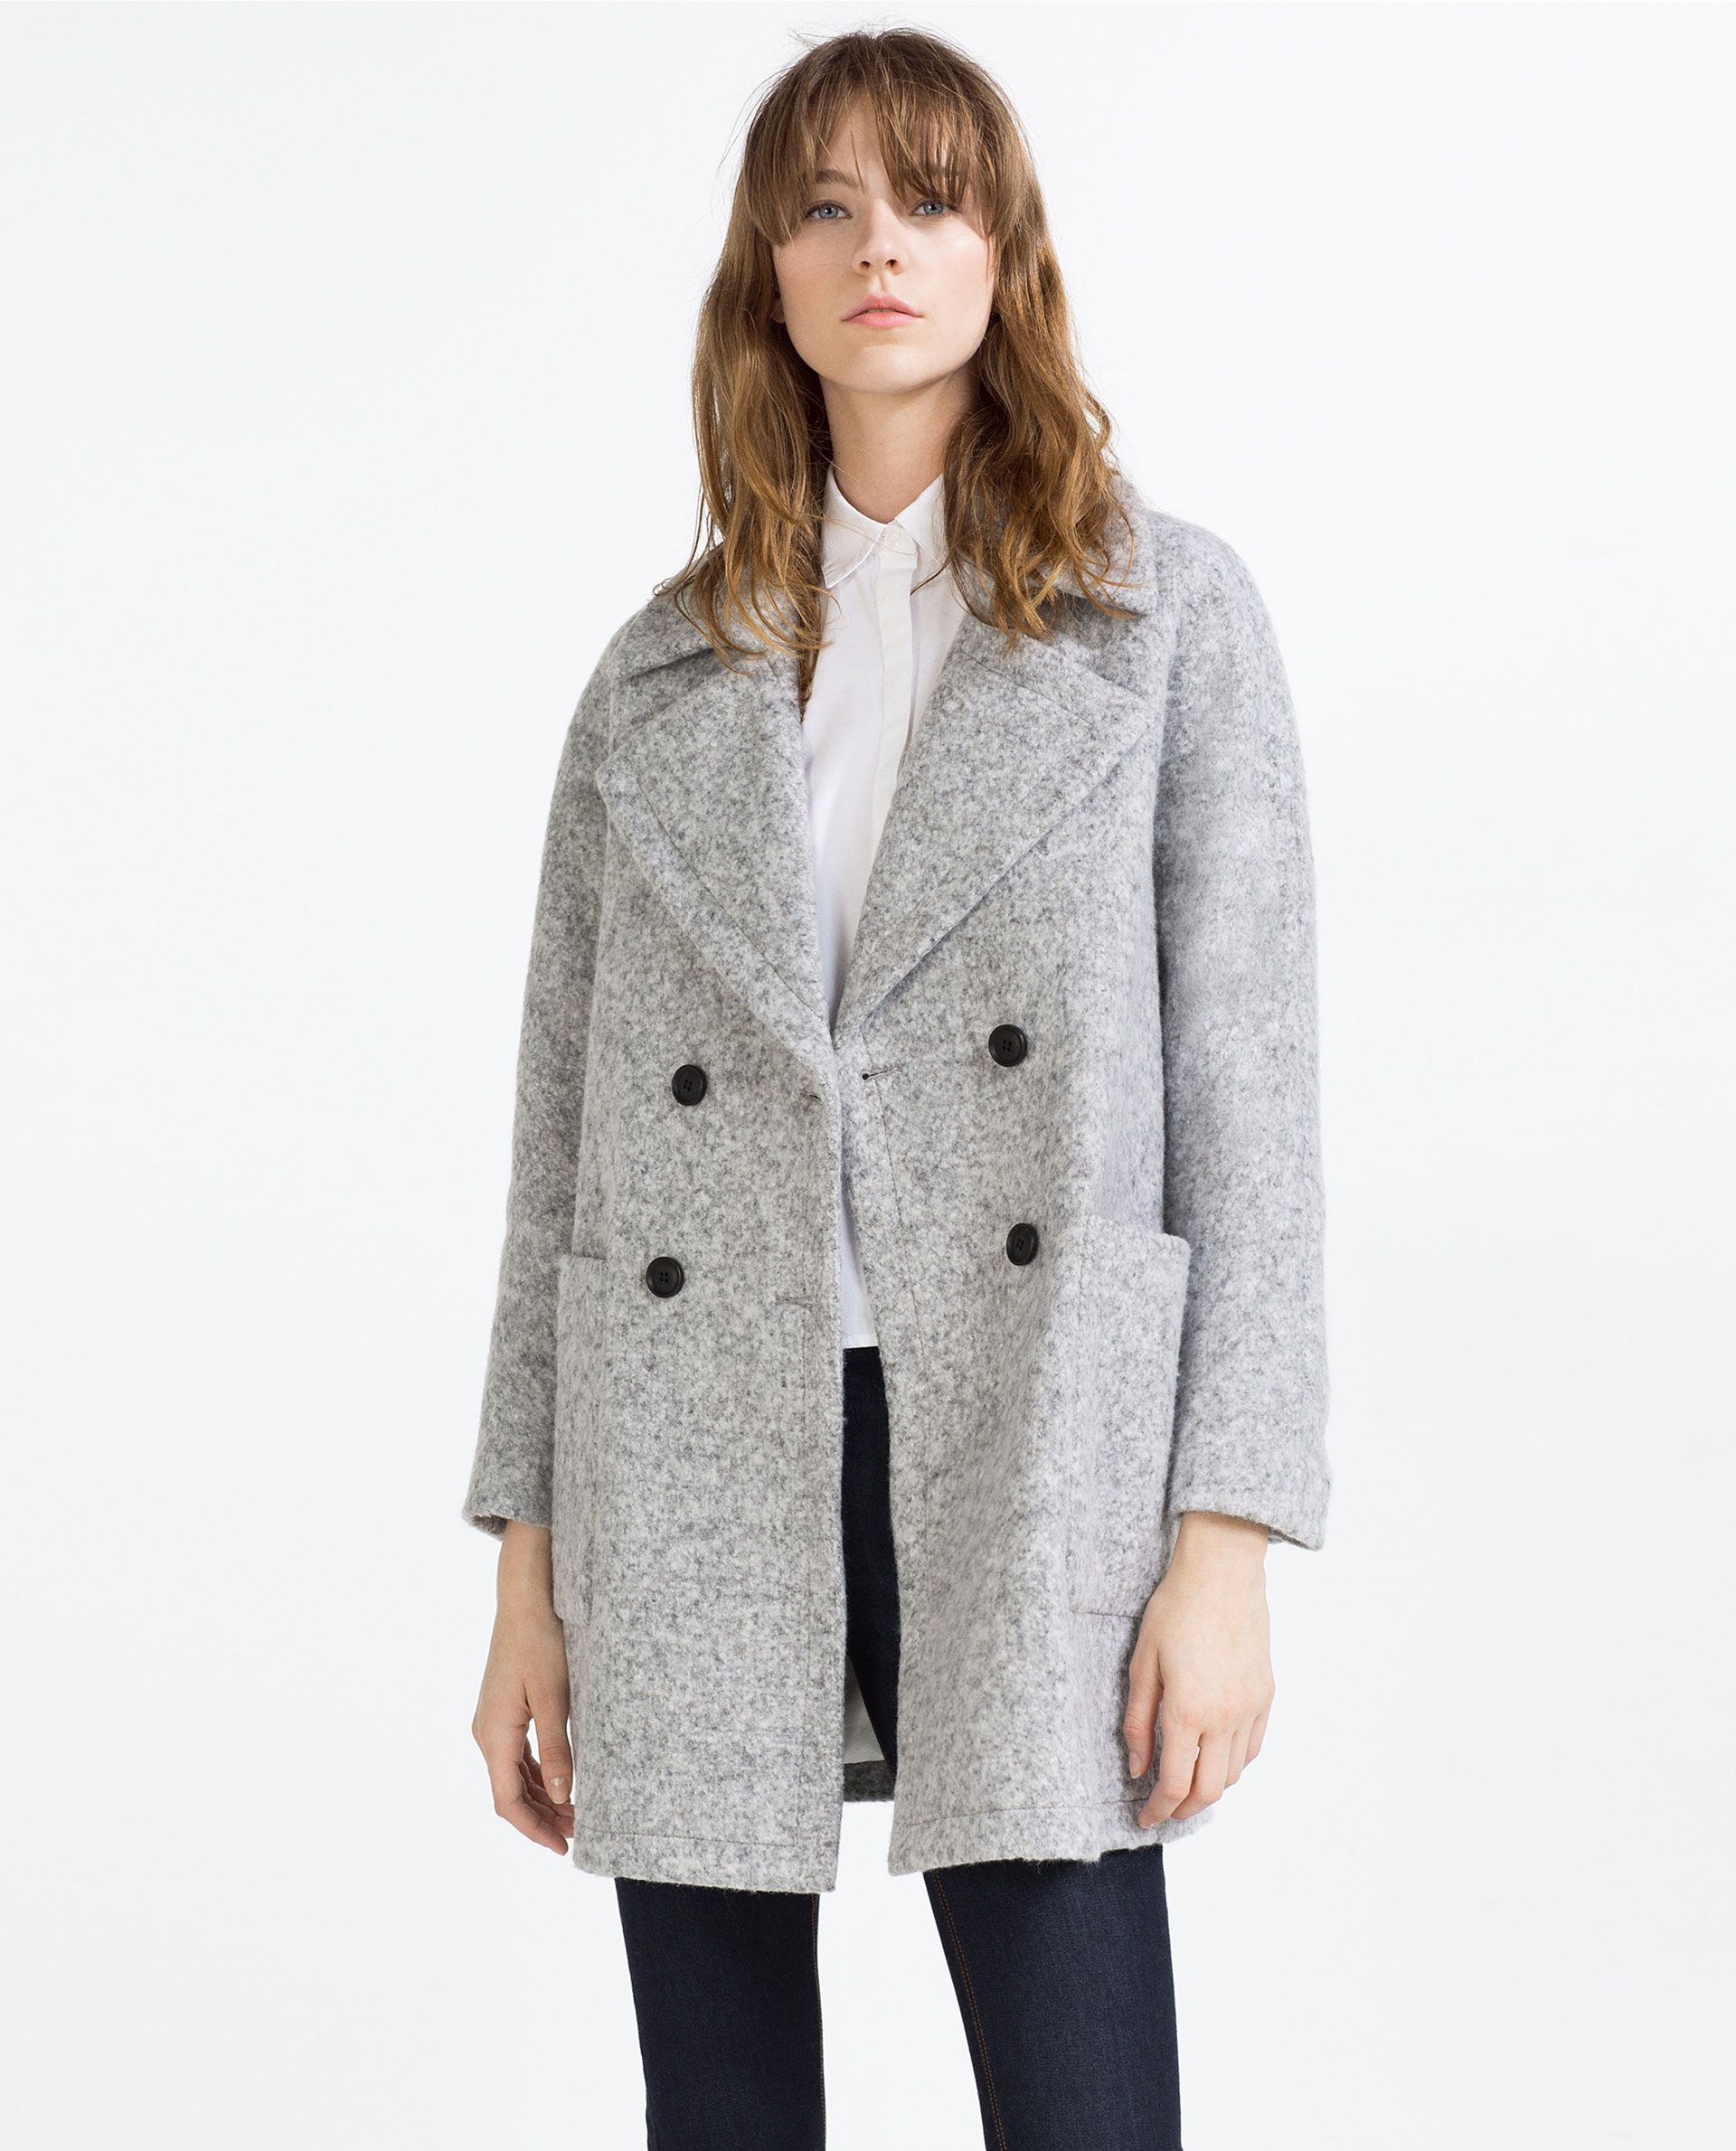 61485d5d DOUBLE BREASTED WOOL COAT - View all - WOMAN - NEW IN | ZARA Spain ...